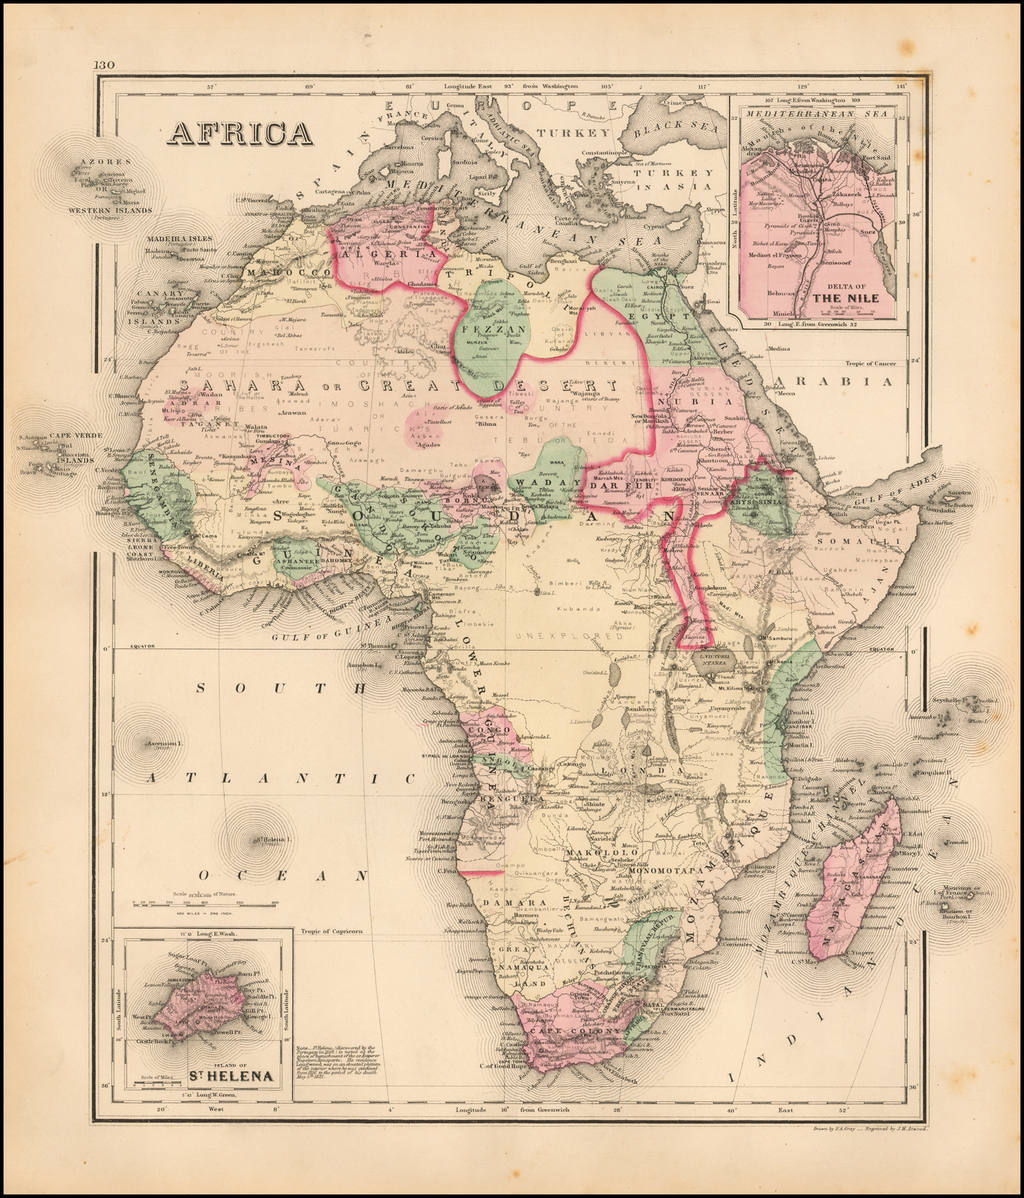 Africa By O.W. Gray